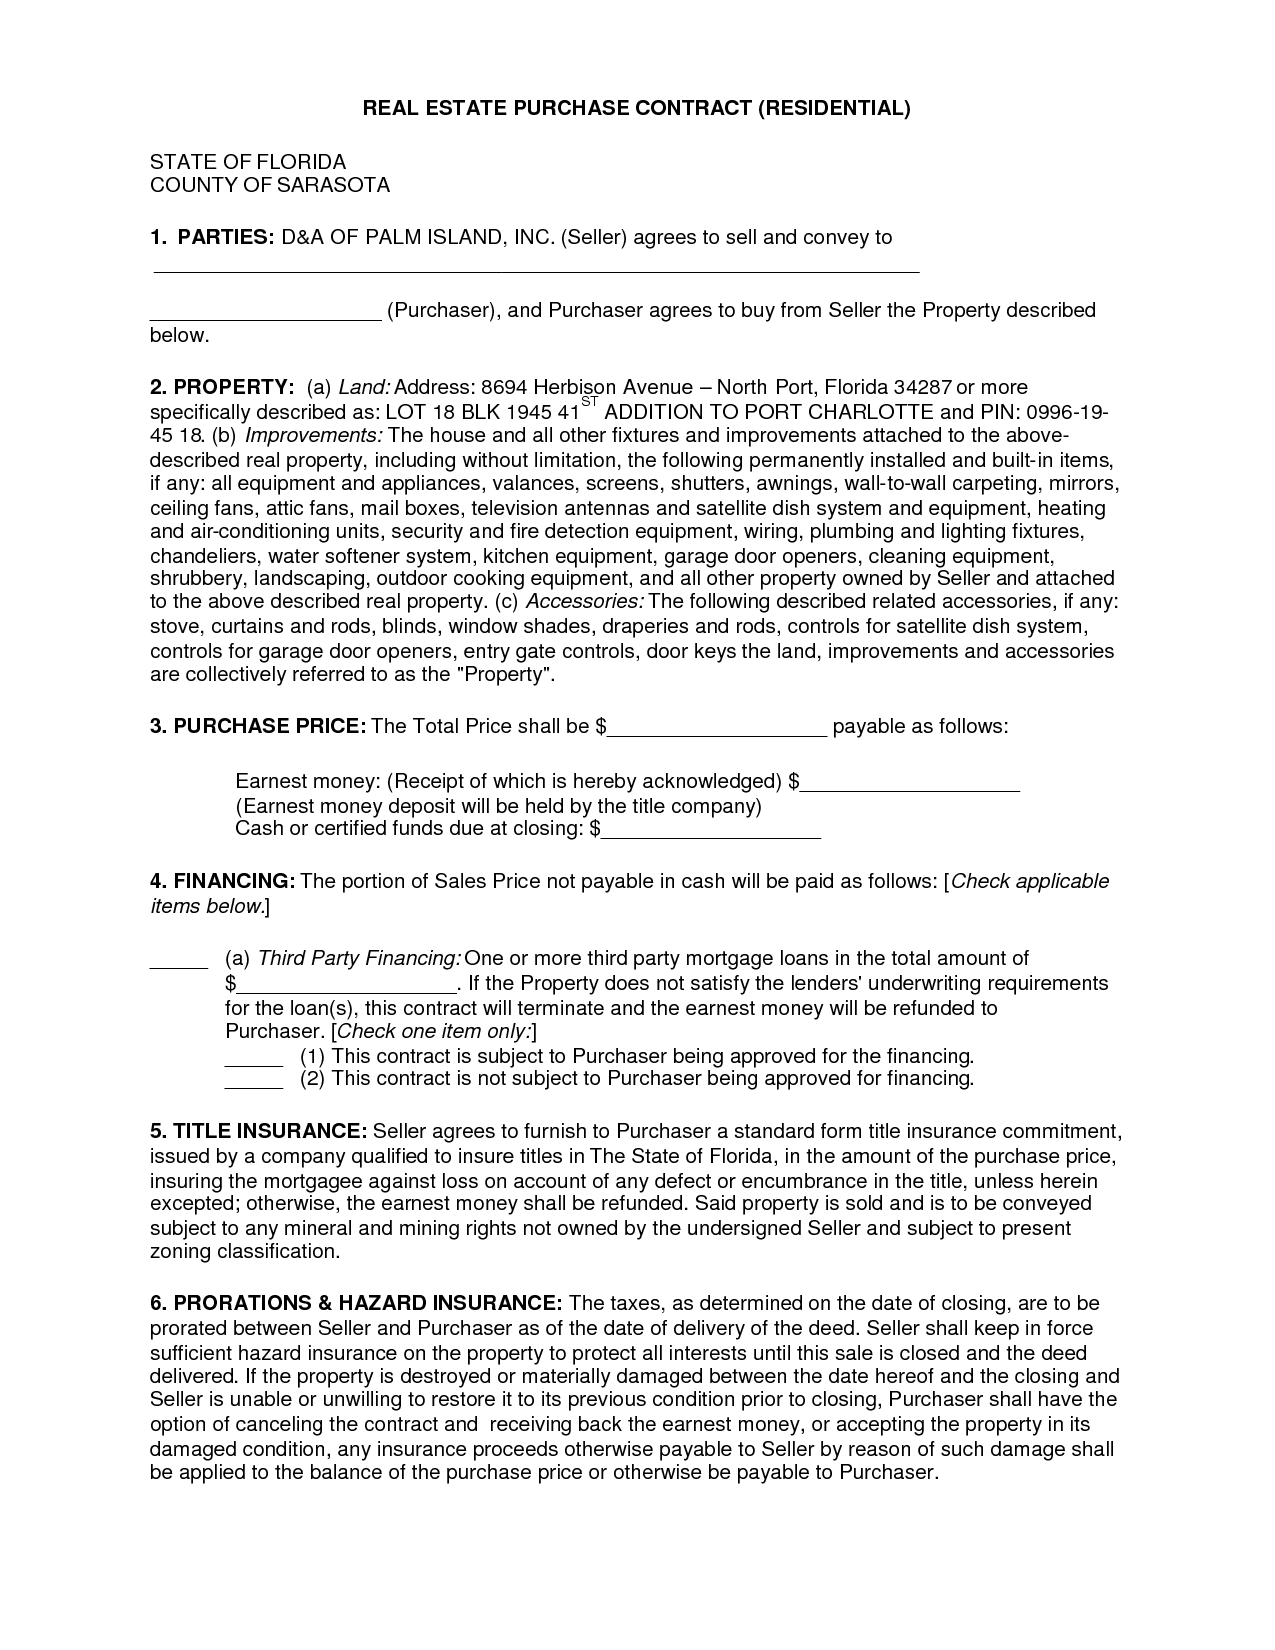 Sales Agreement Template Free Free Real Estate Purchase